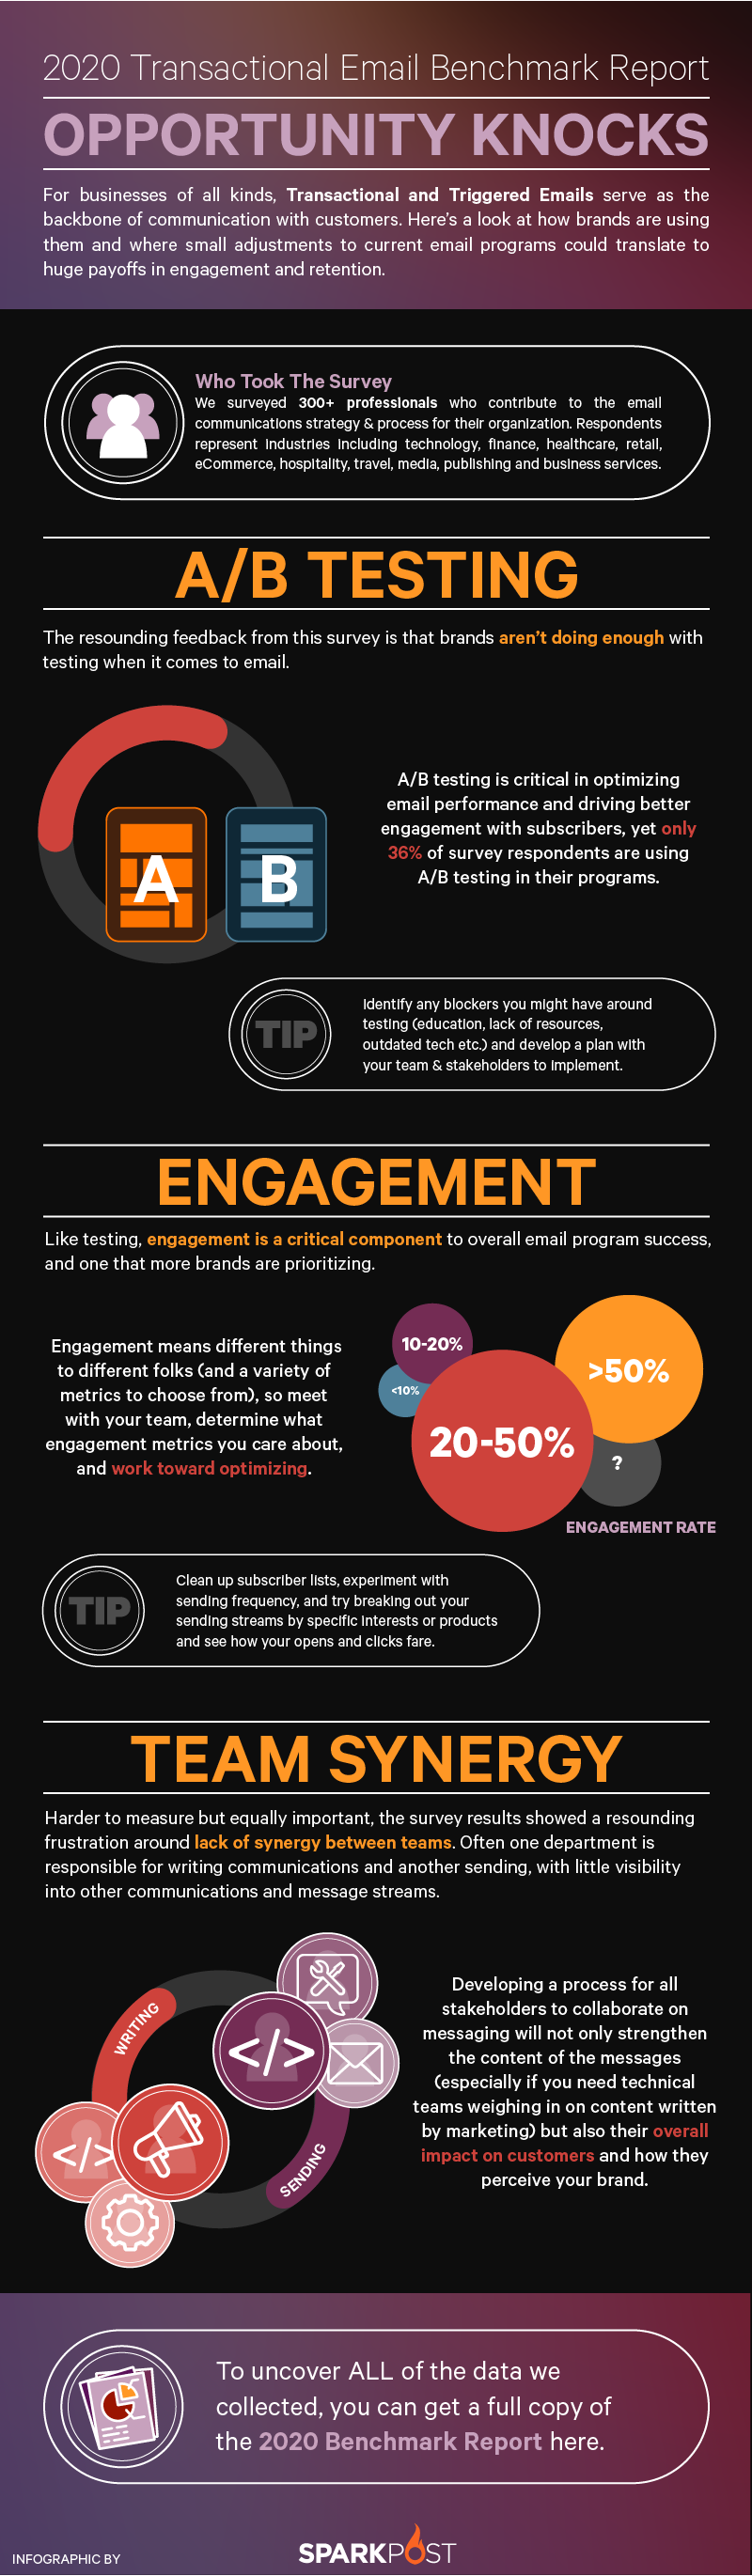 transactional email benchmark report infographic image 2020